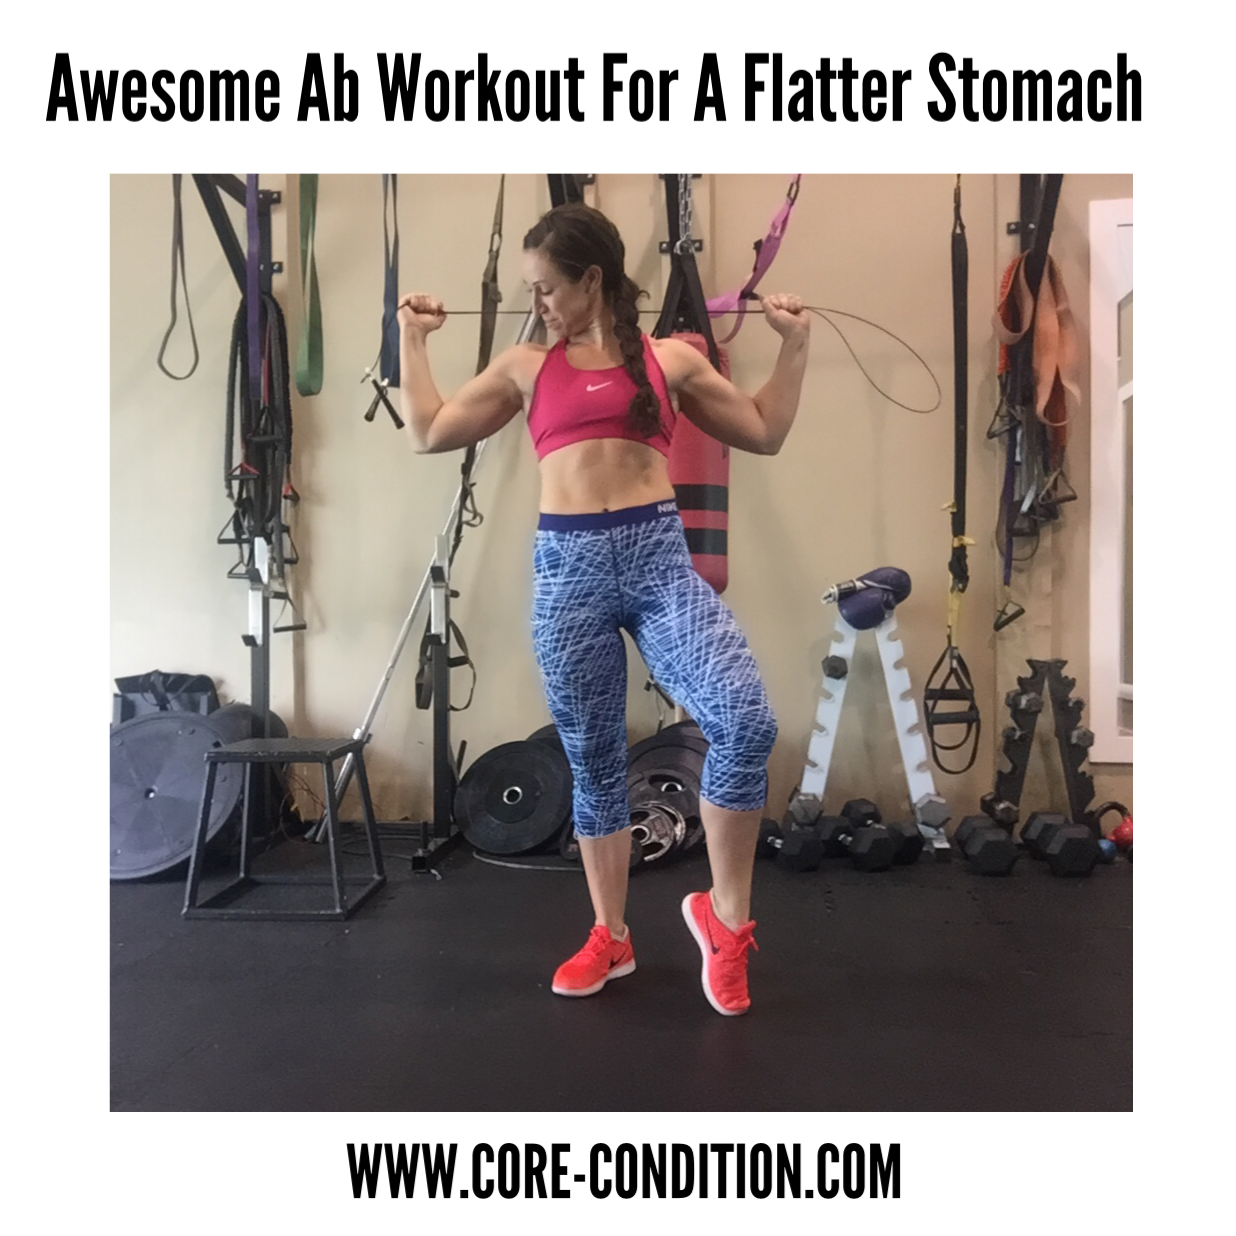 Awesome Ab Workout For A Flatter Stomach